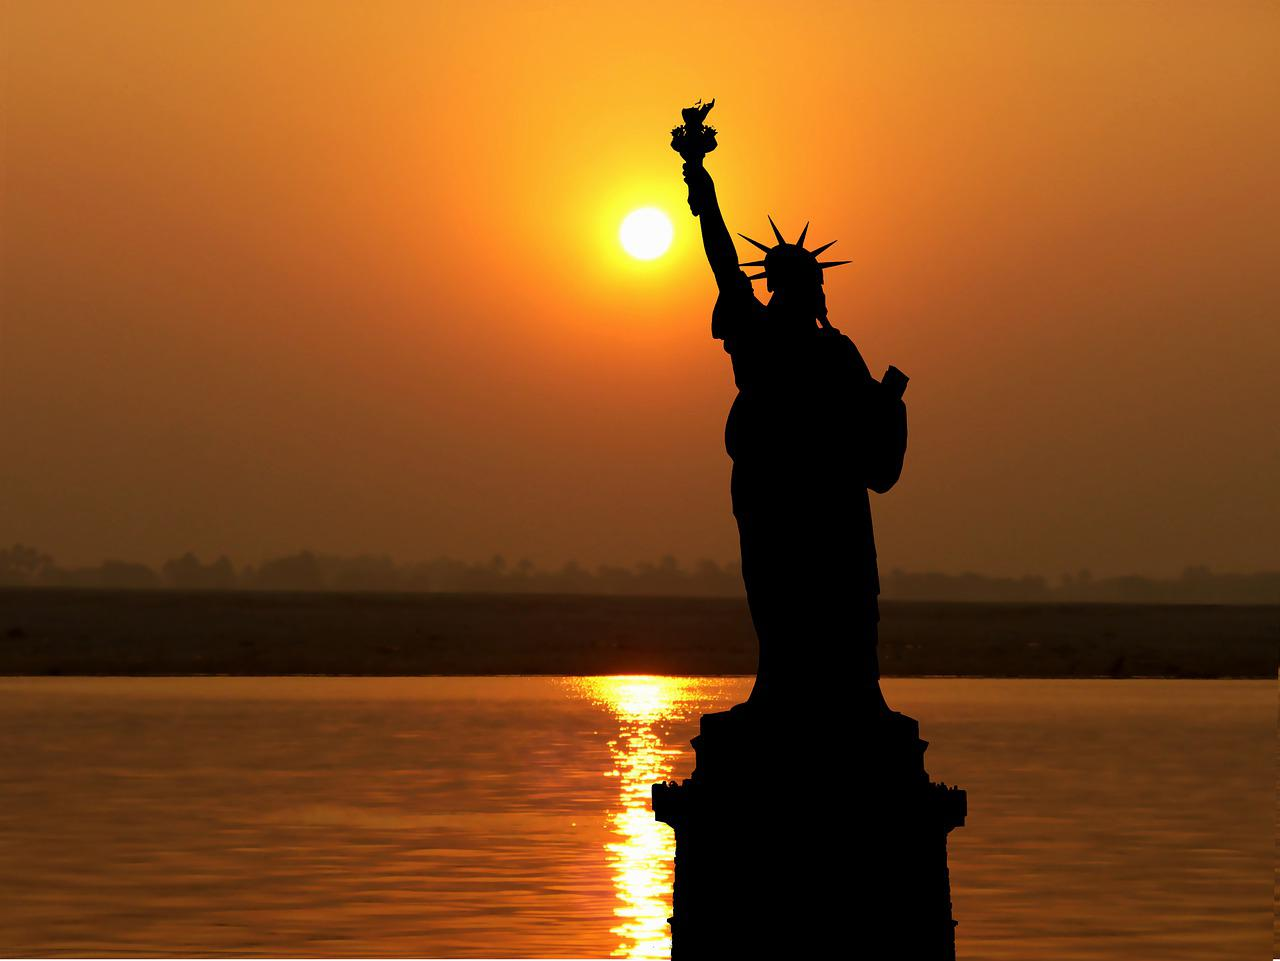 Sunset America New York Statue - Free photo on Pixabay